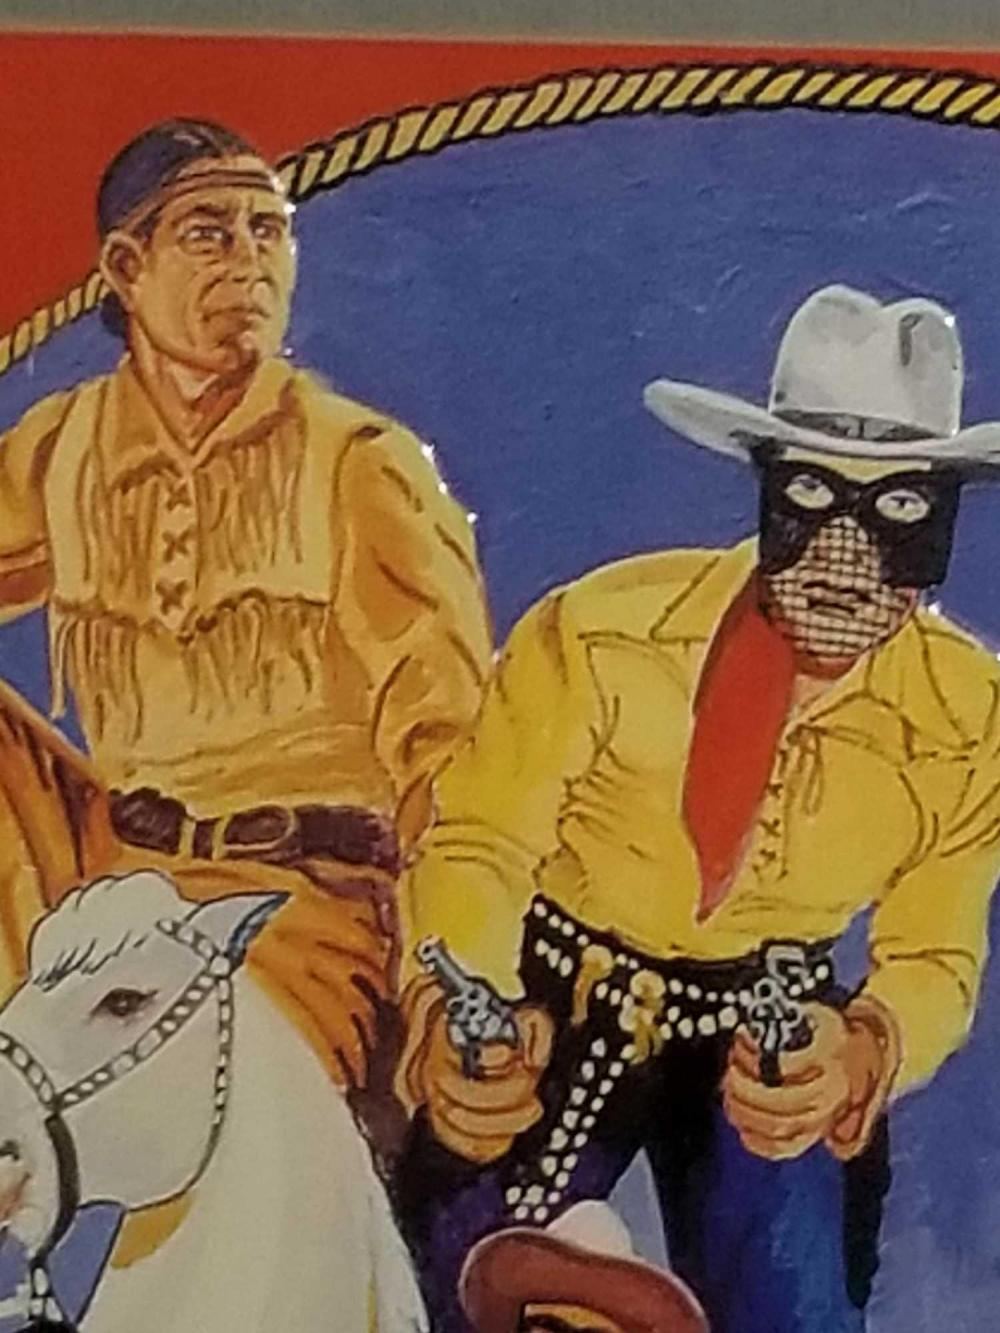 Lot 79: THE LONE RANGER 60TH ANNIVERSARY SIGNED EMBOSSED TIN SIGN